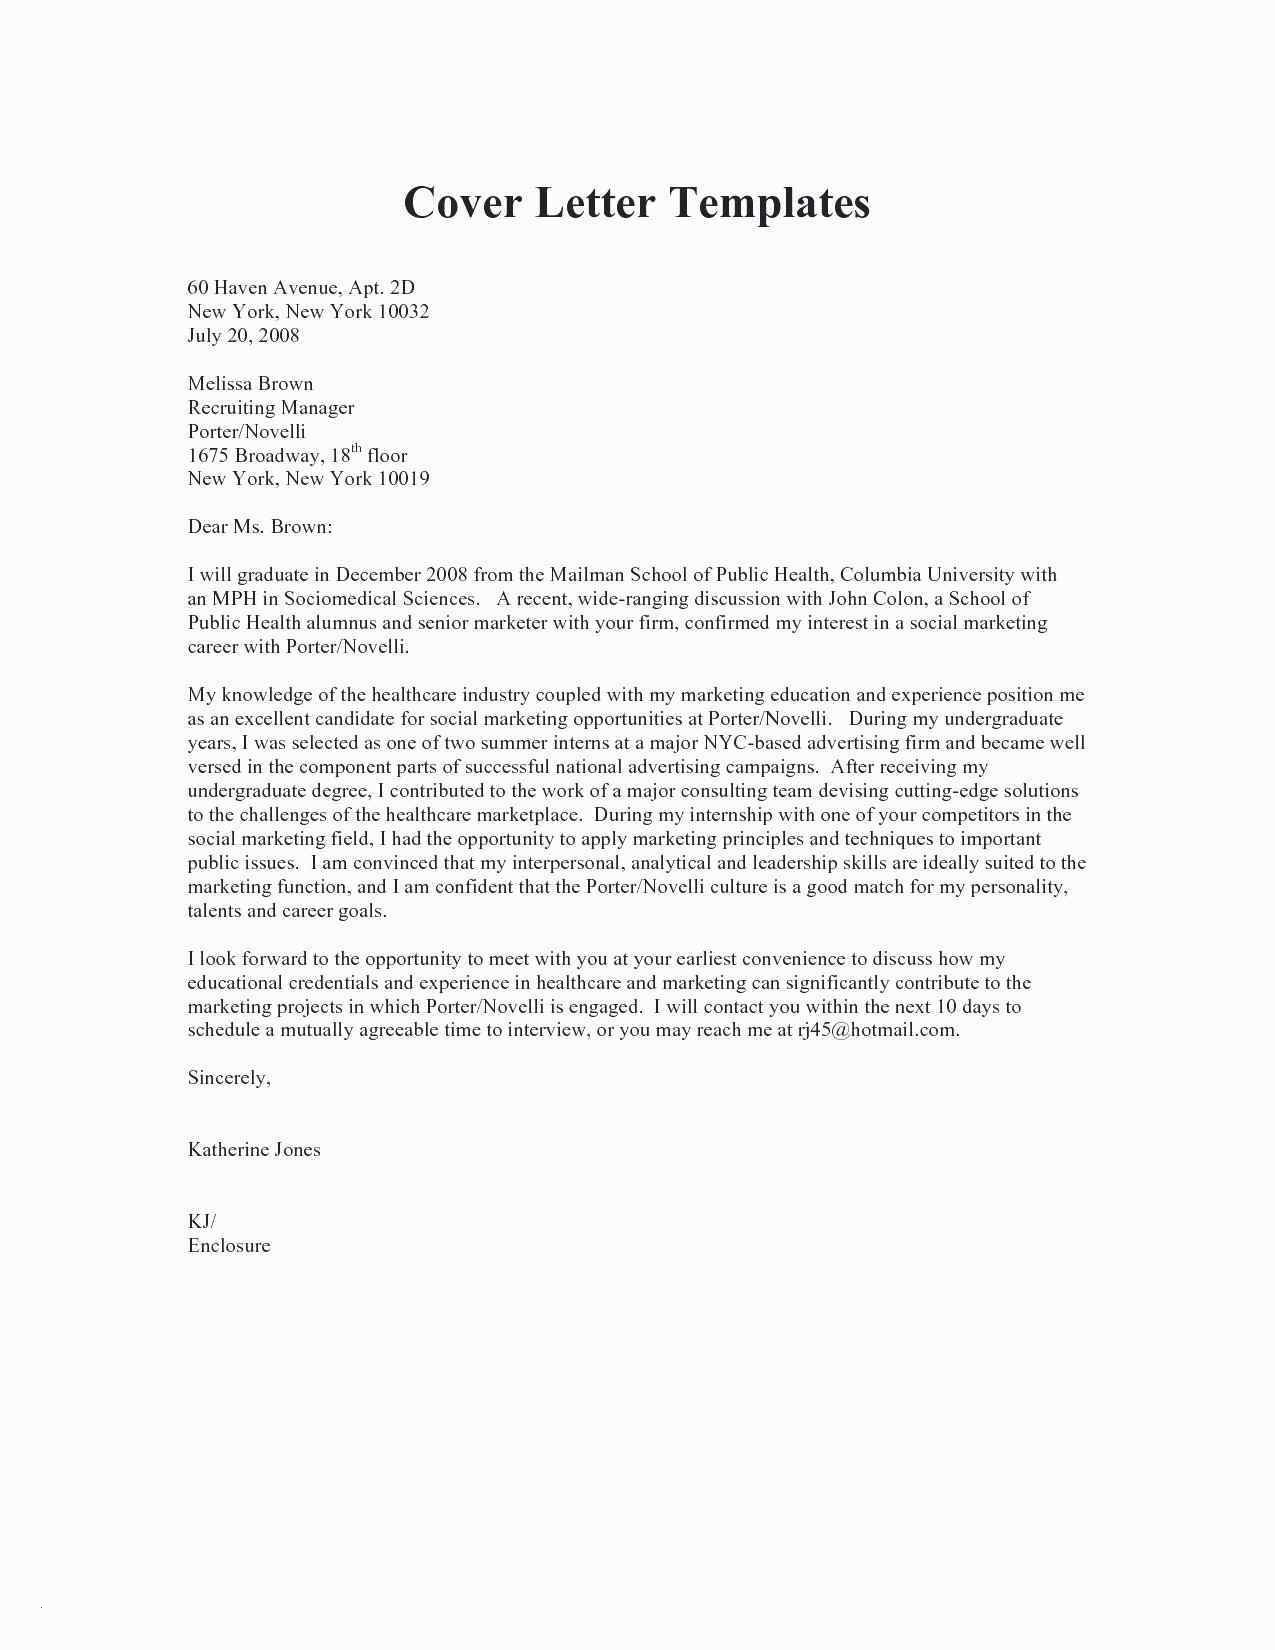 27 Cover Letter Enclosure In 2020 With Images Career Change